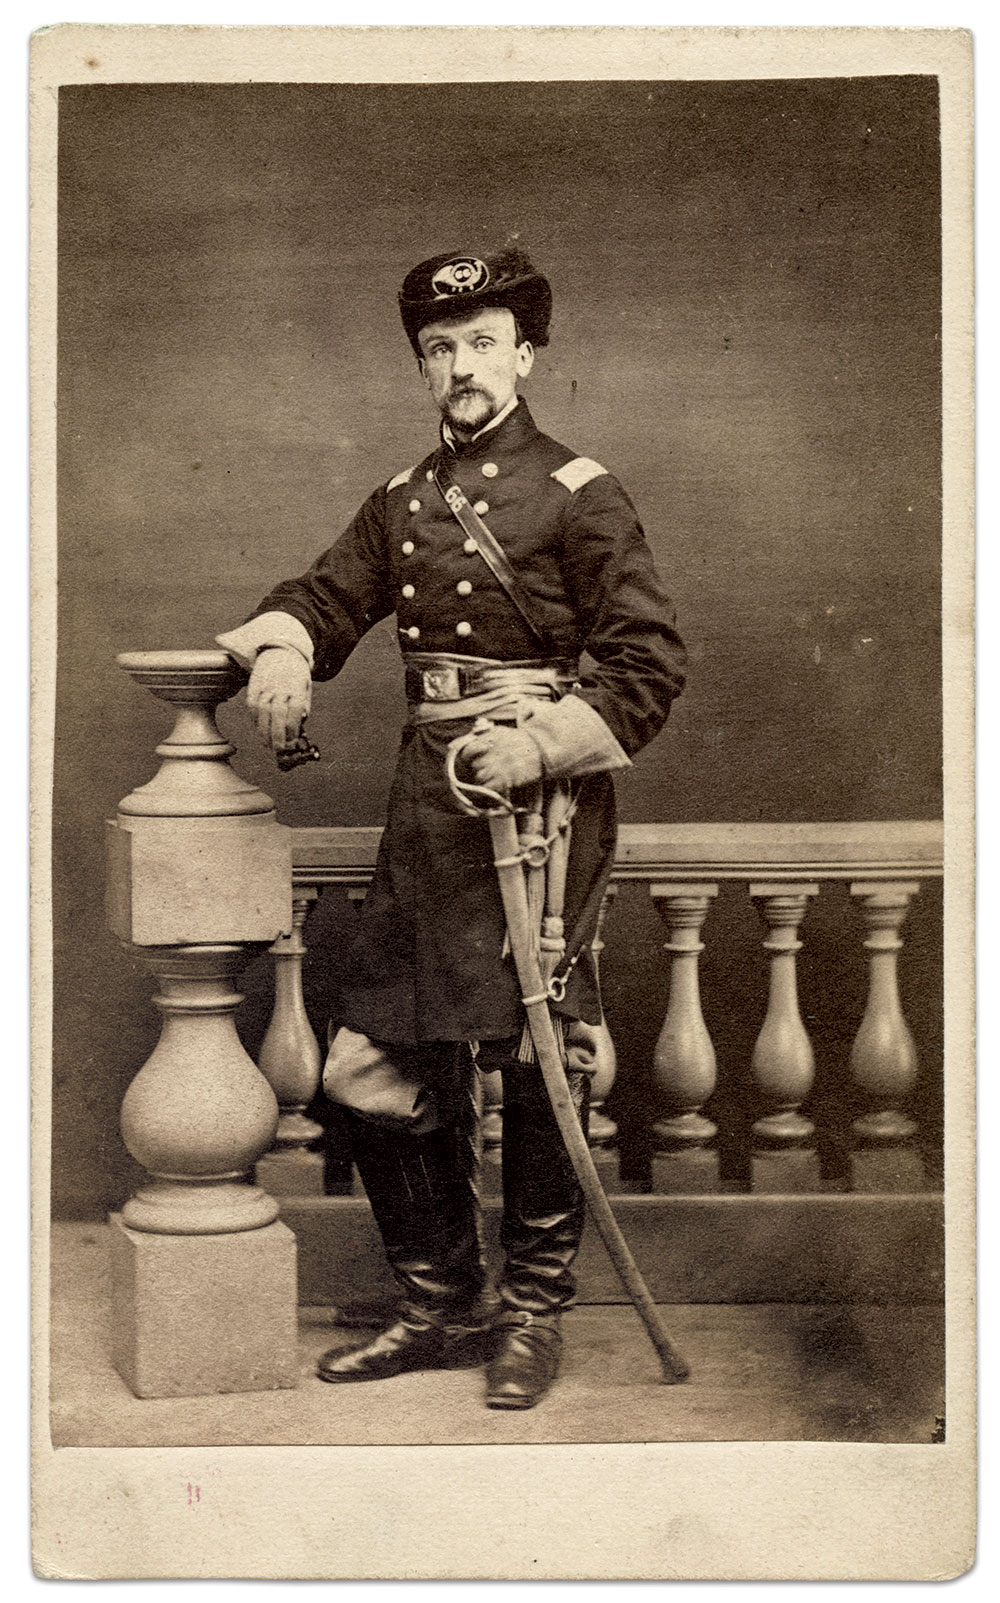 Carte de visite by Howard & Davies of Indianapolis, Ind. Rick Brown Collection.